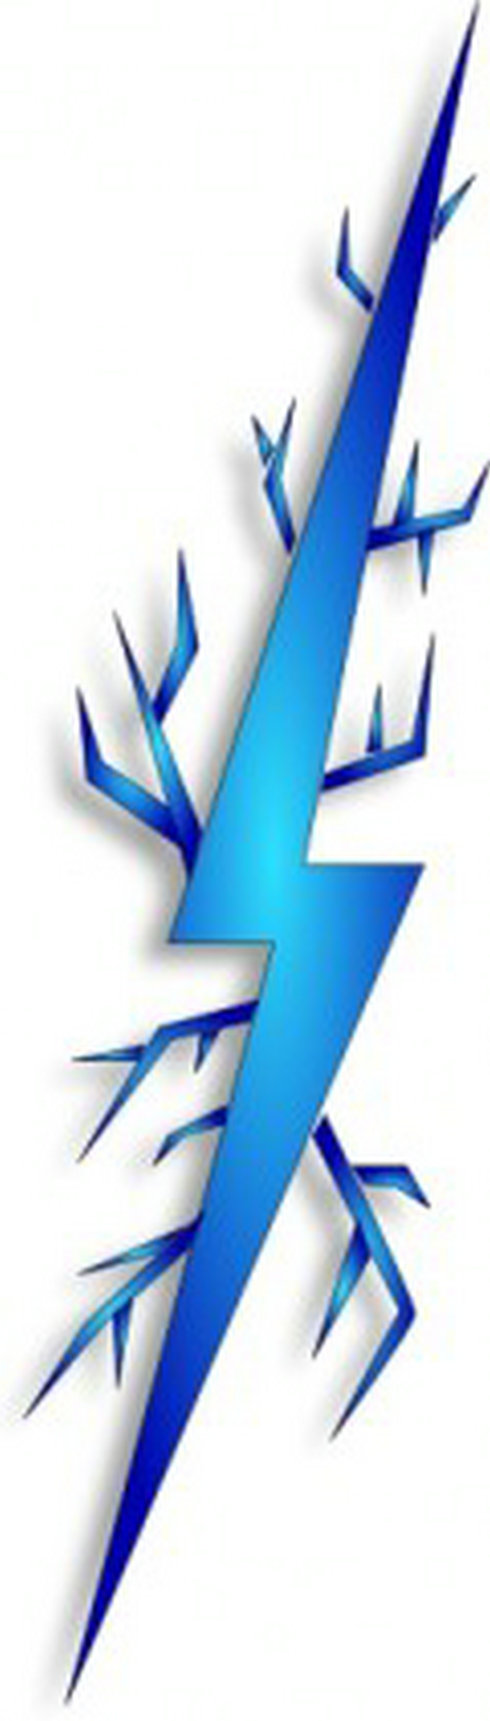 Electric clipart electrical logo. Cool logos free